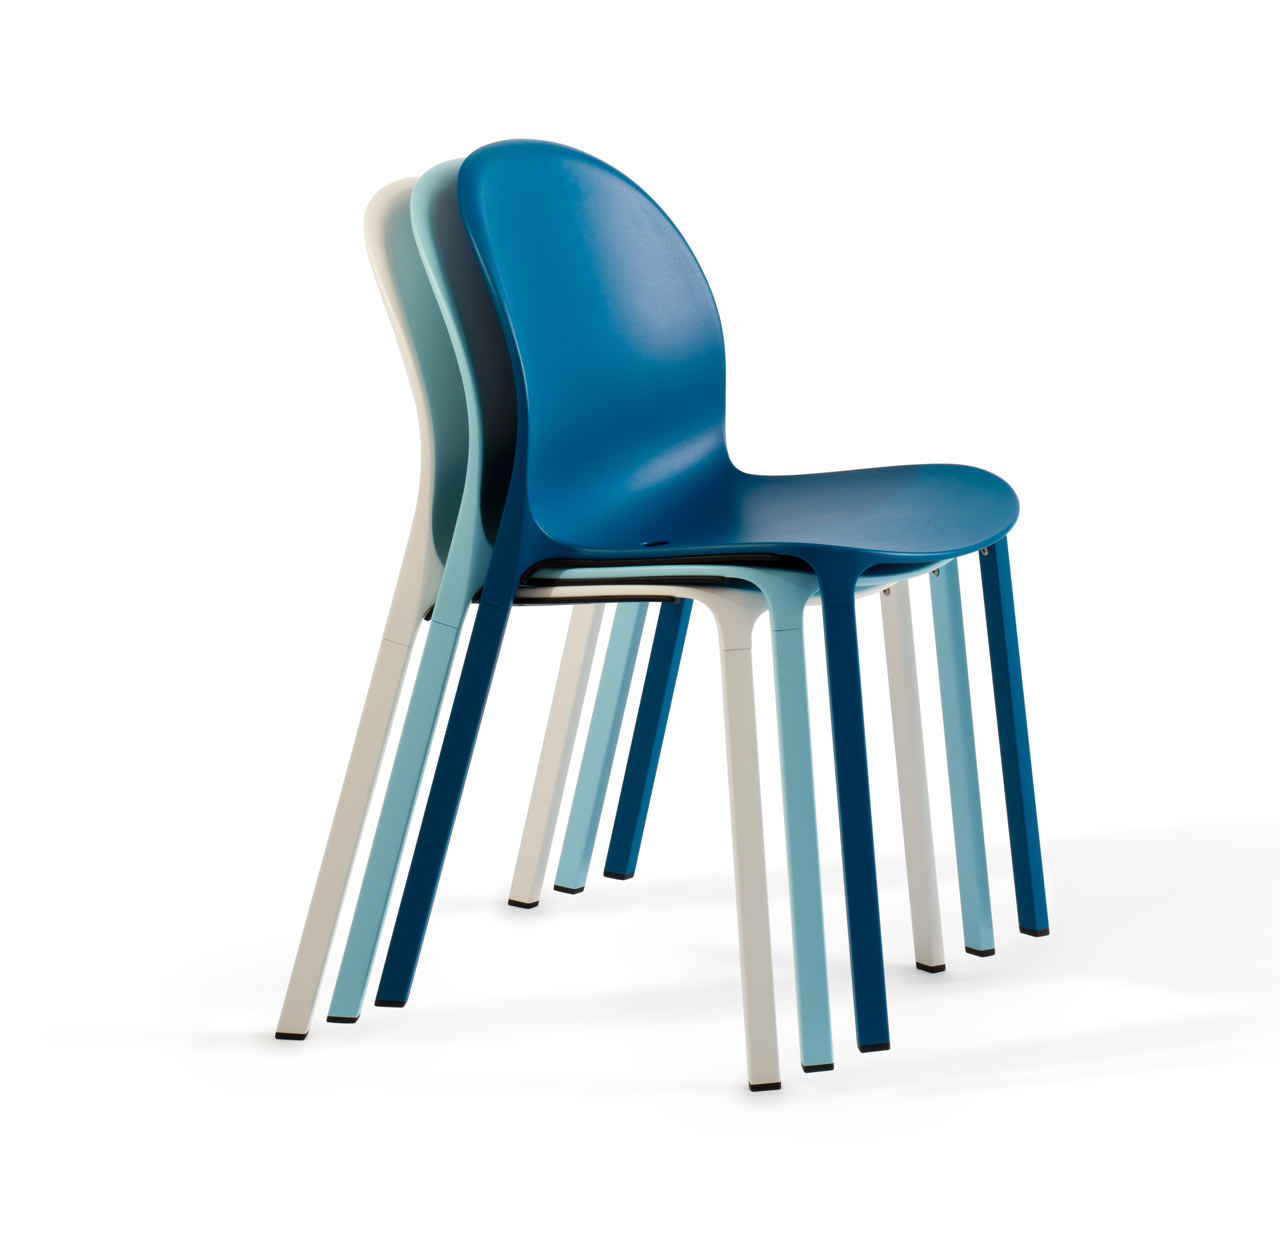 Get Out! Olivares Aluminum Chair